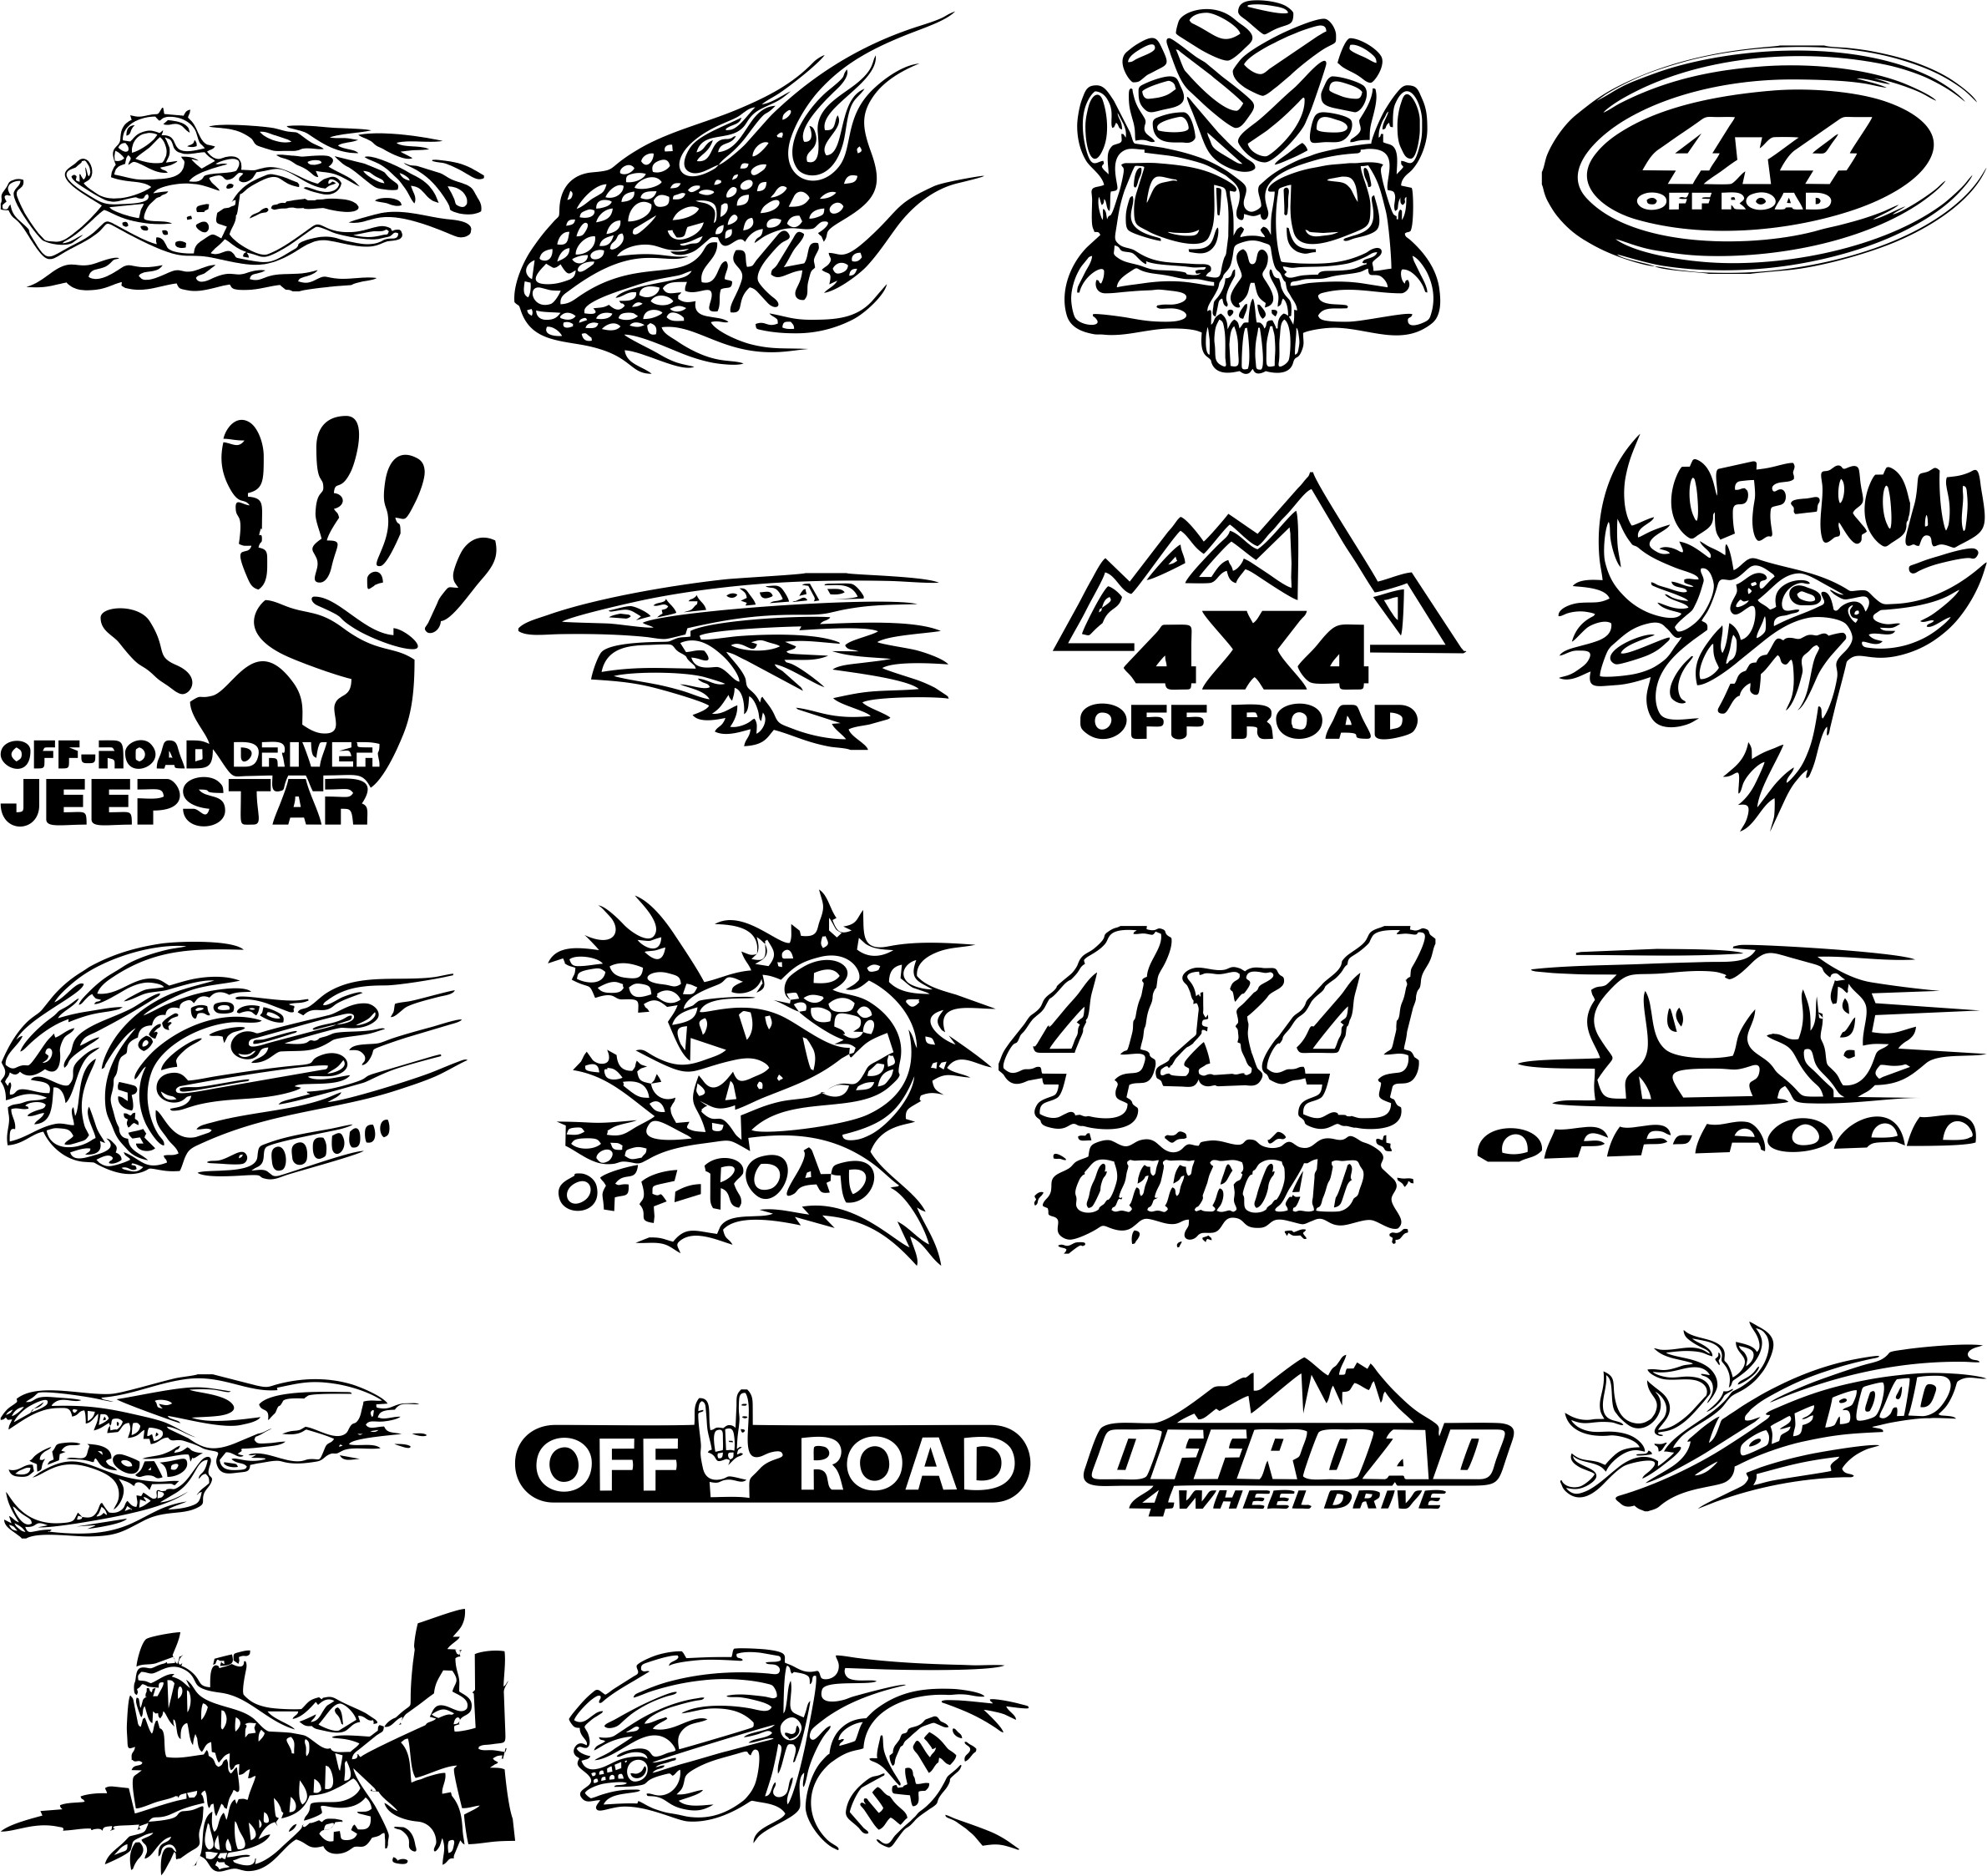 Layouts Of Stickers On An off-road Car Part 5 Free DXF File